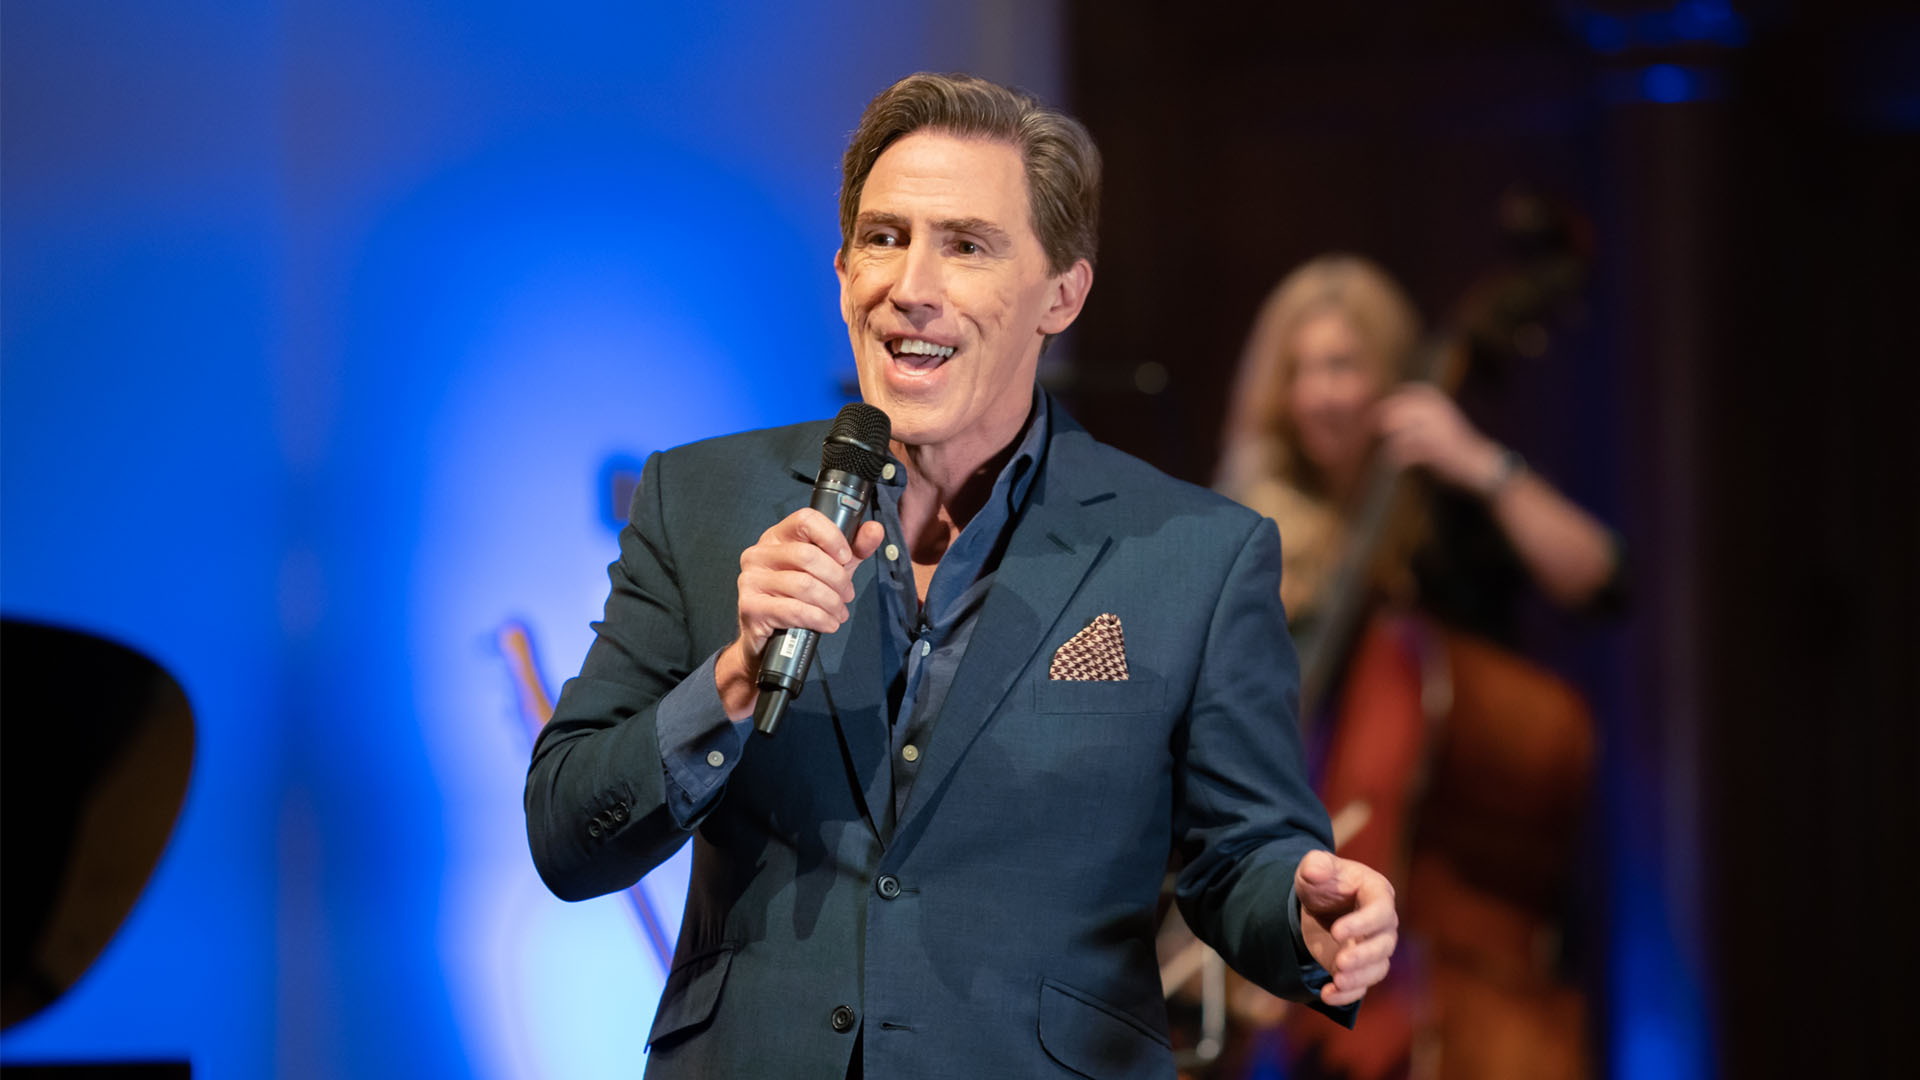 Production image of Rob Brydon on stage - smiling wide, microphone in hand